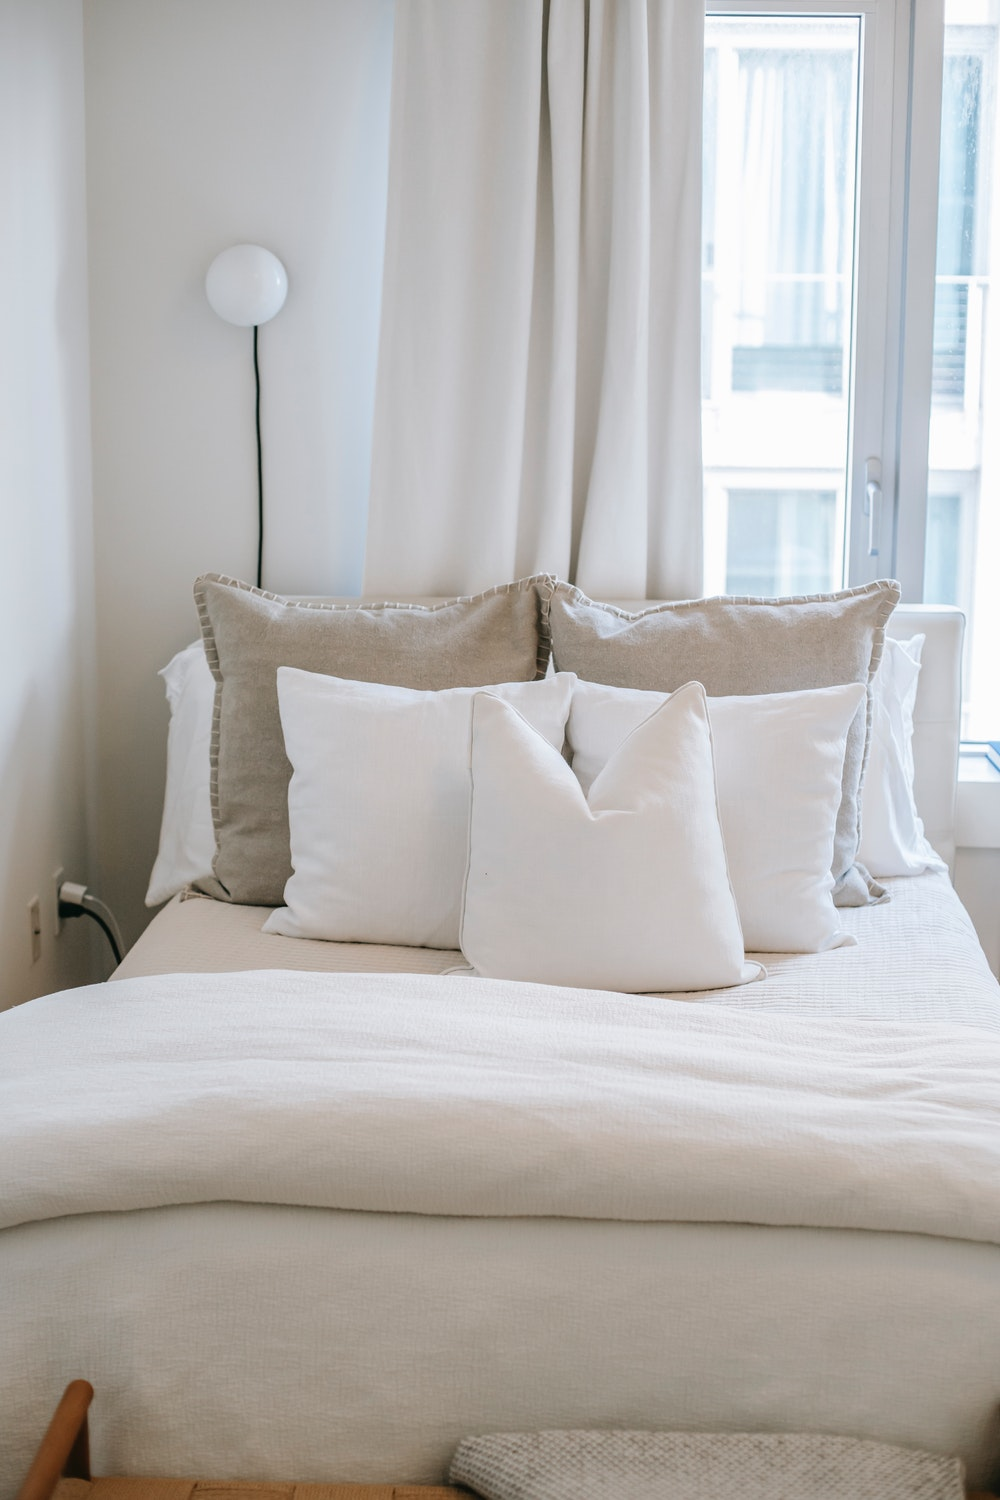 Keep Your Pillows Fresh And Soft